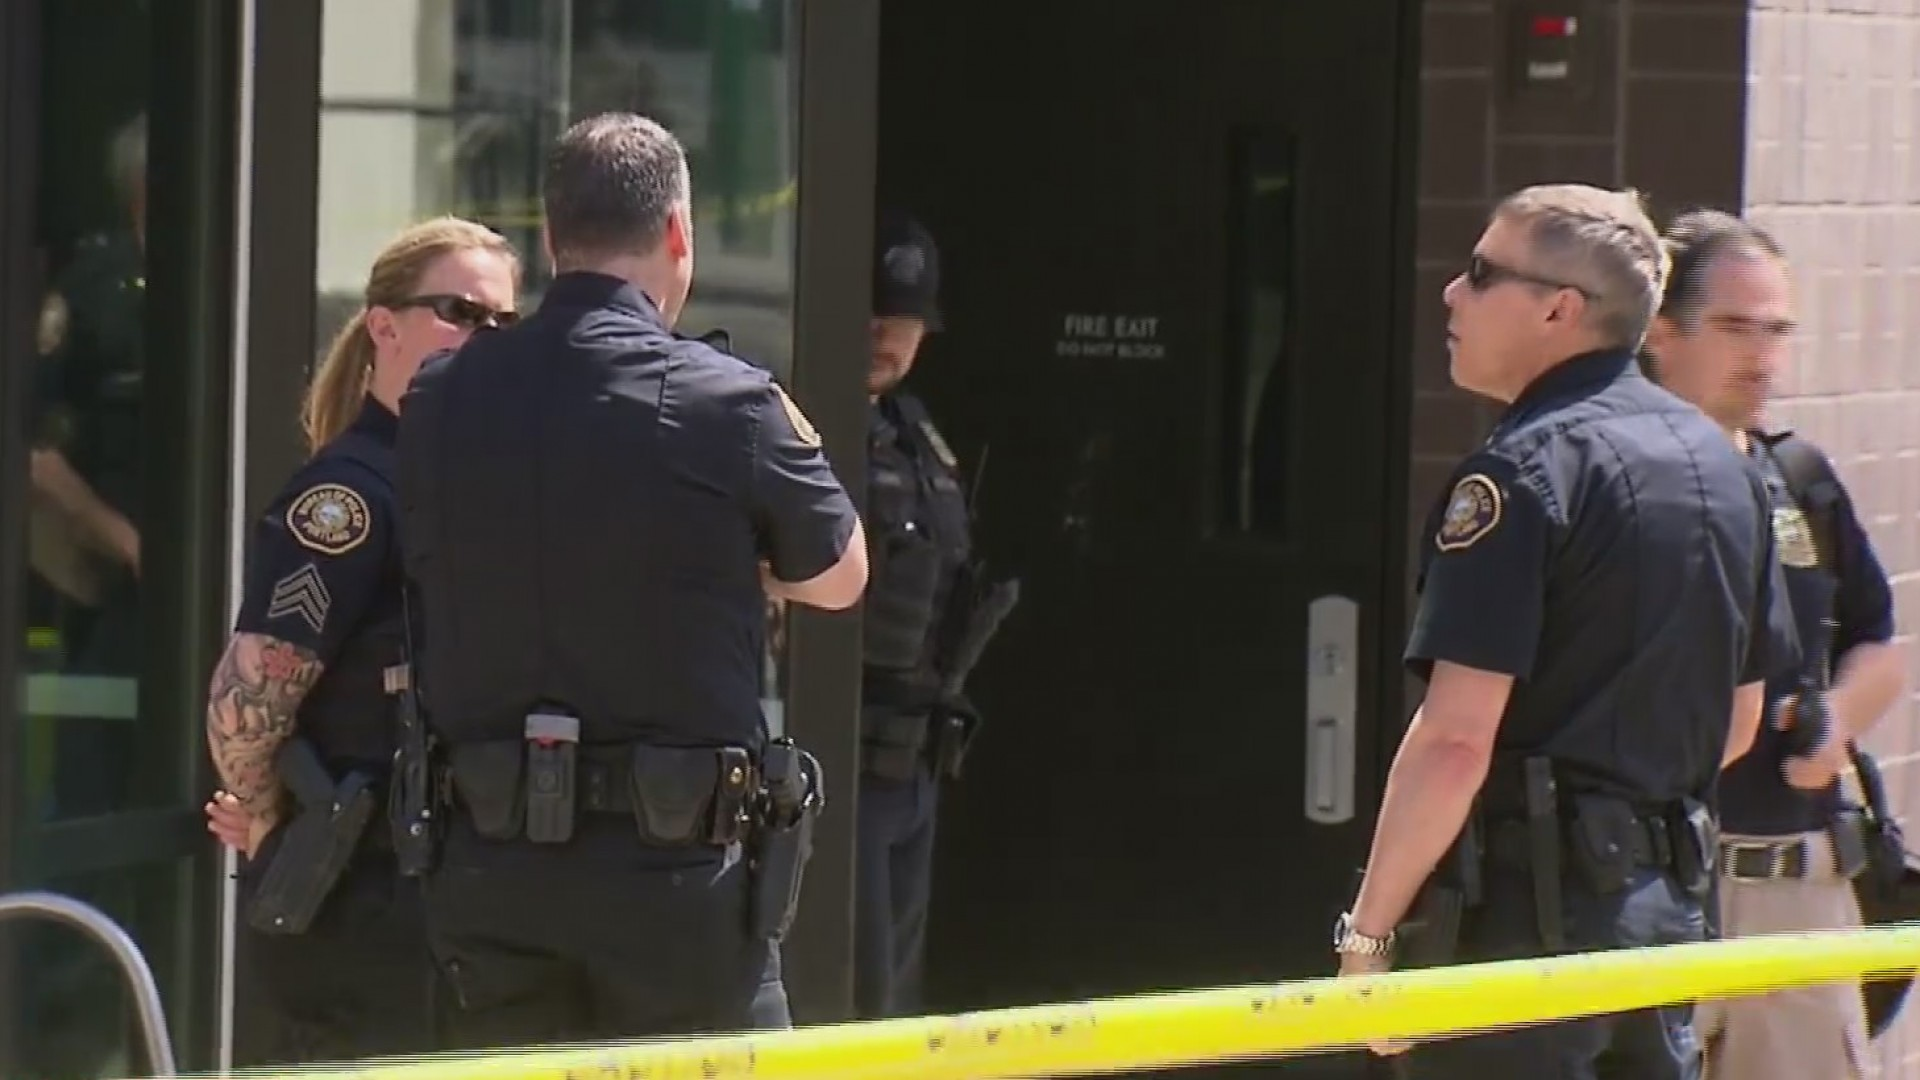 Deadly_officer_involved_shooting_investi_0_20190610123643